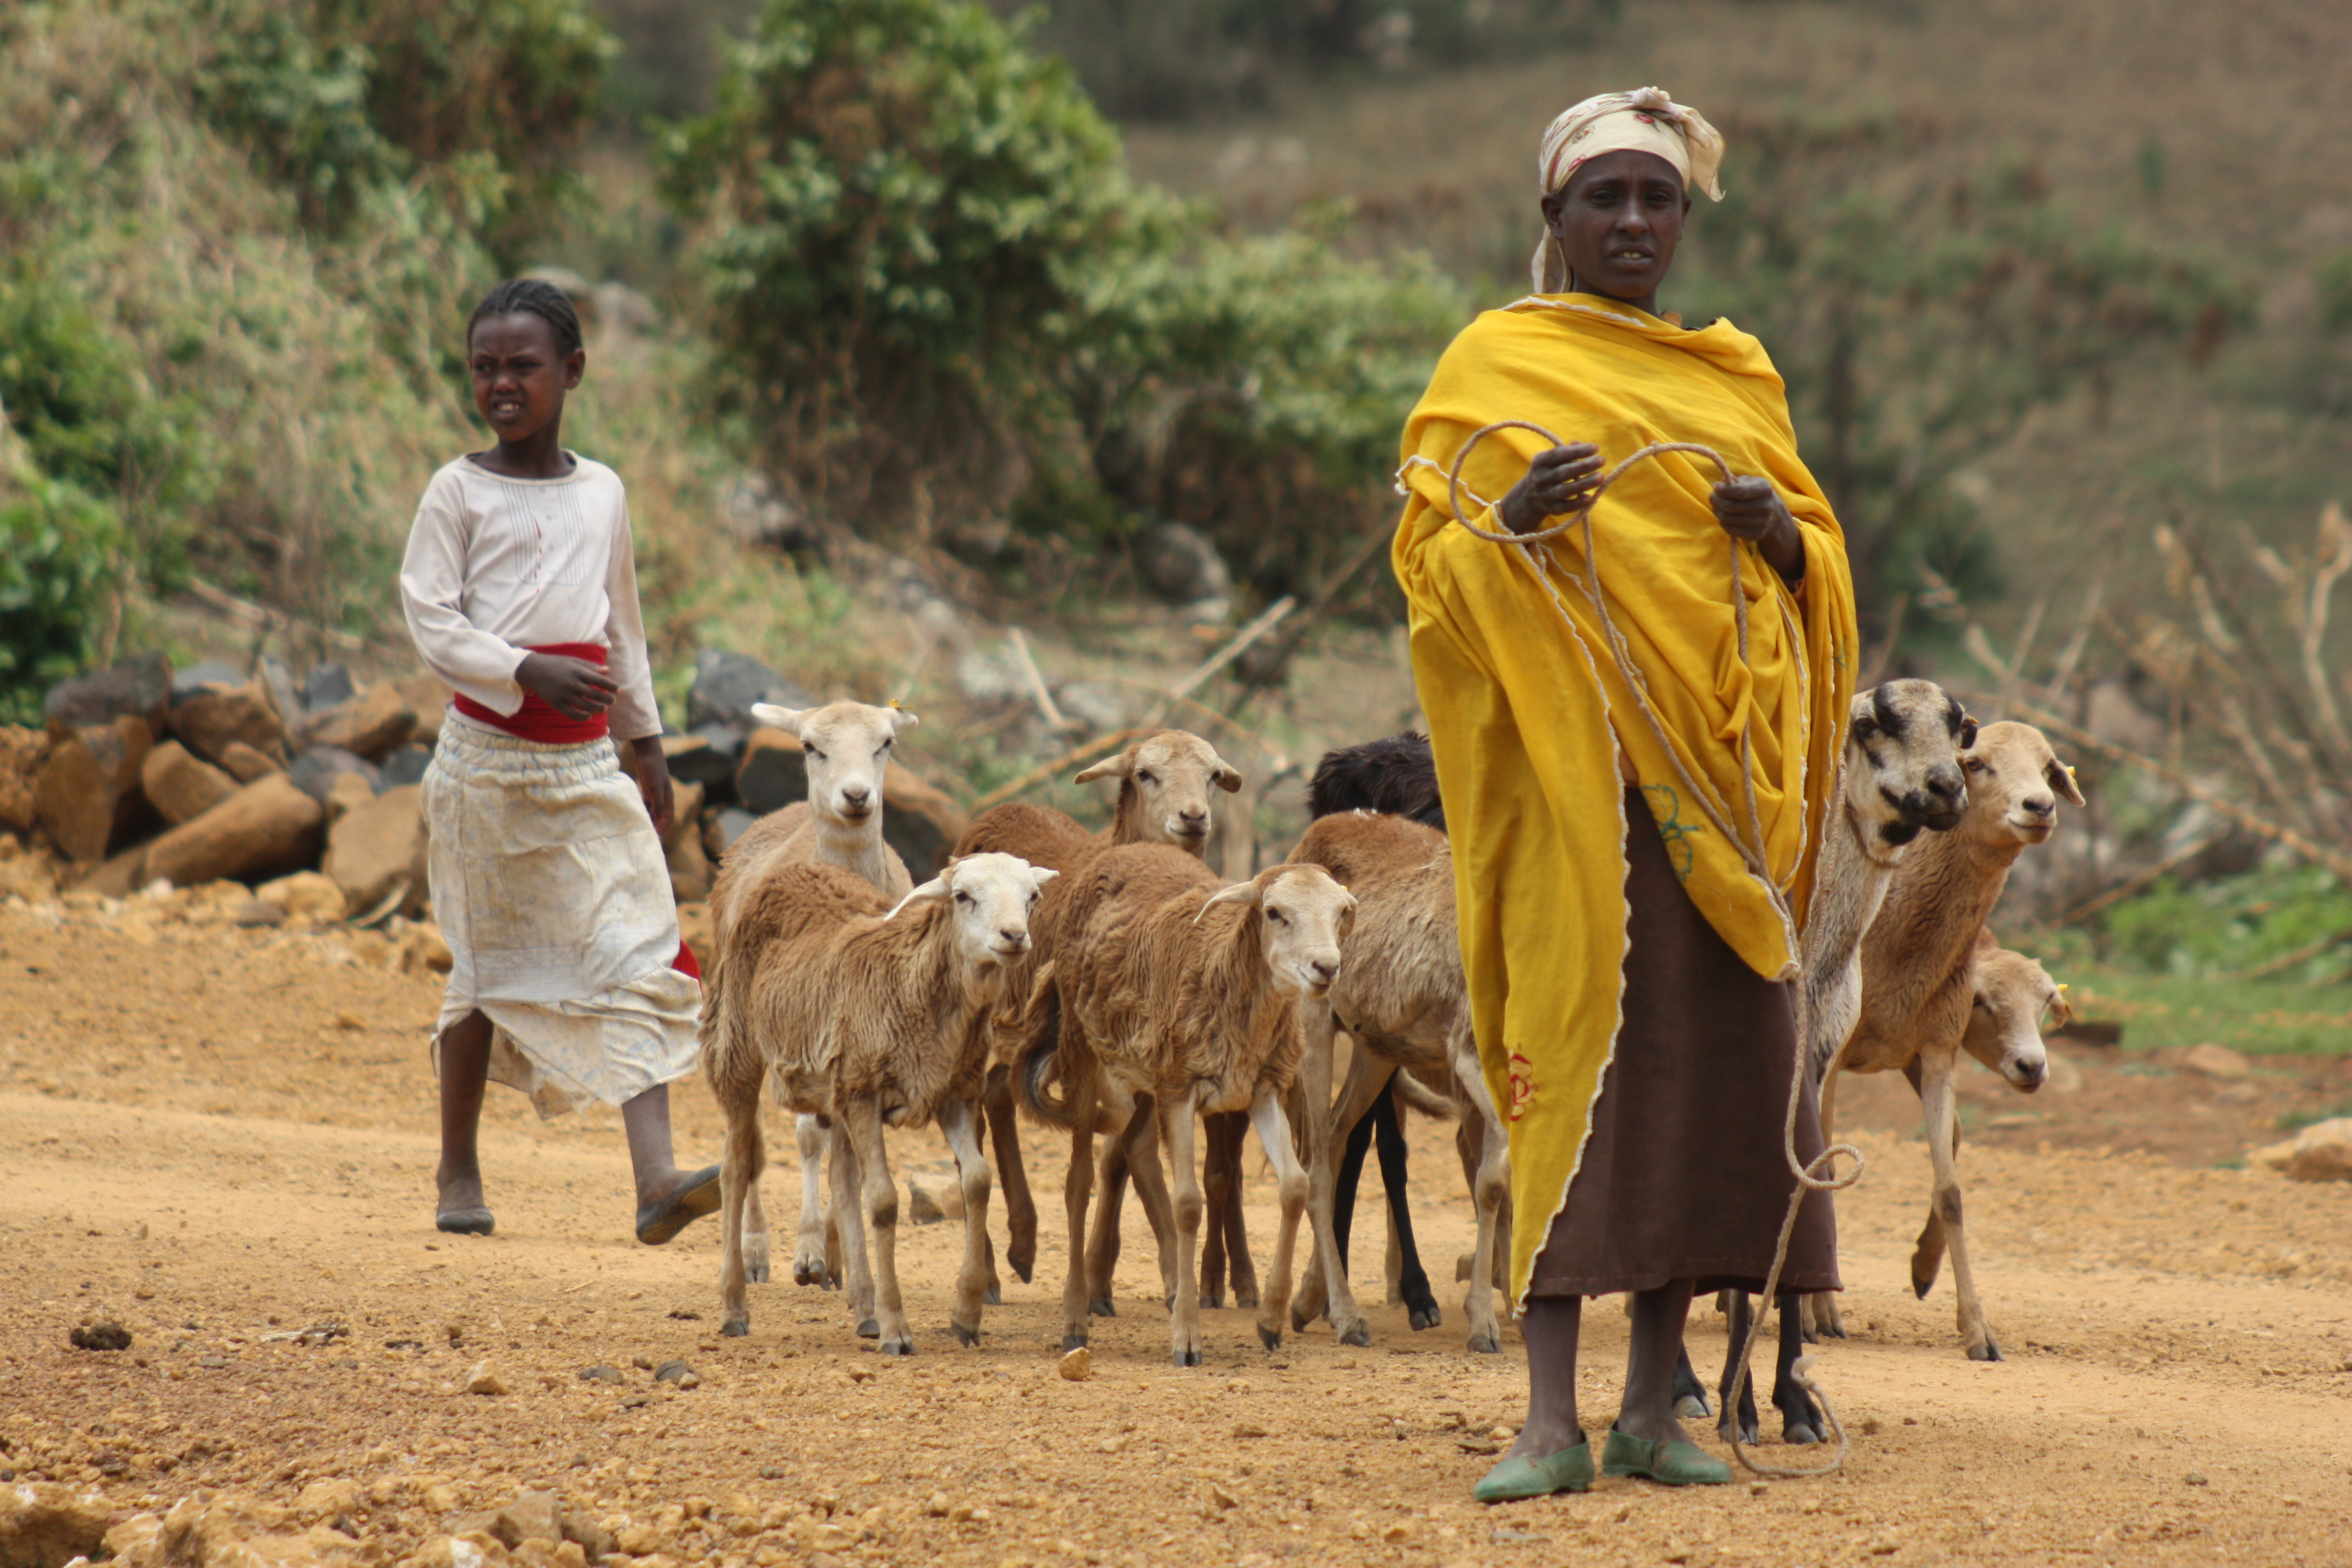 Taking sheep for disease testing in Ethiopia